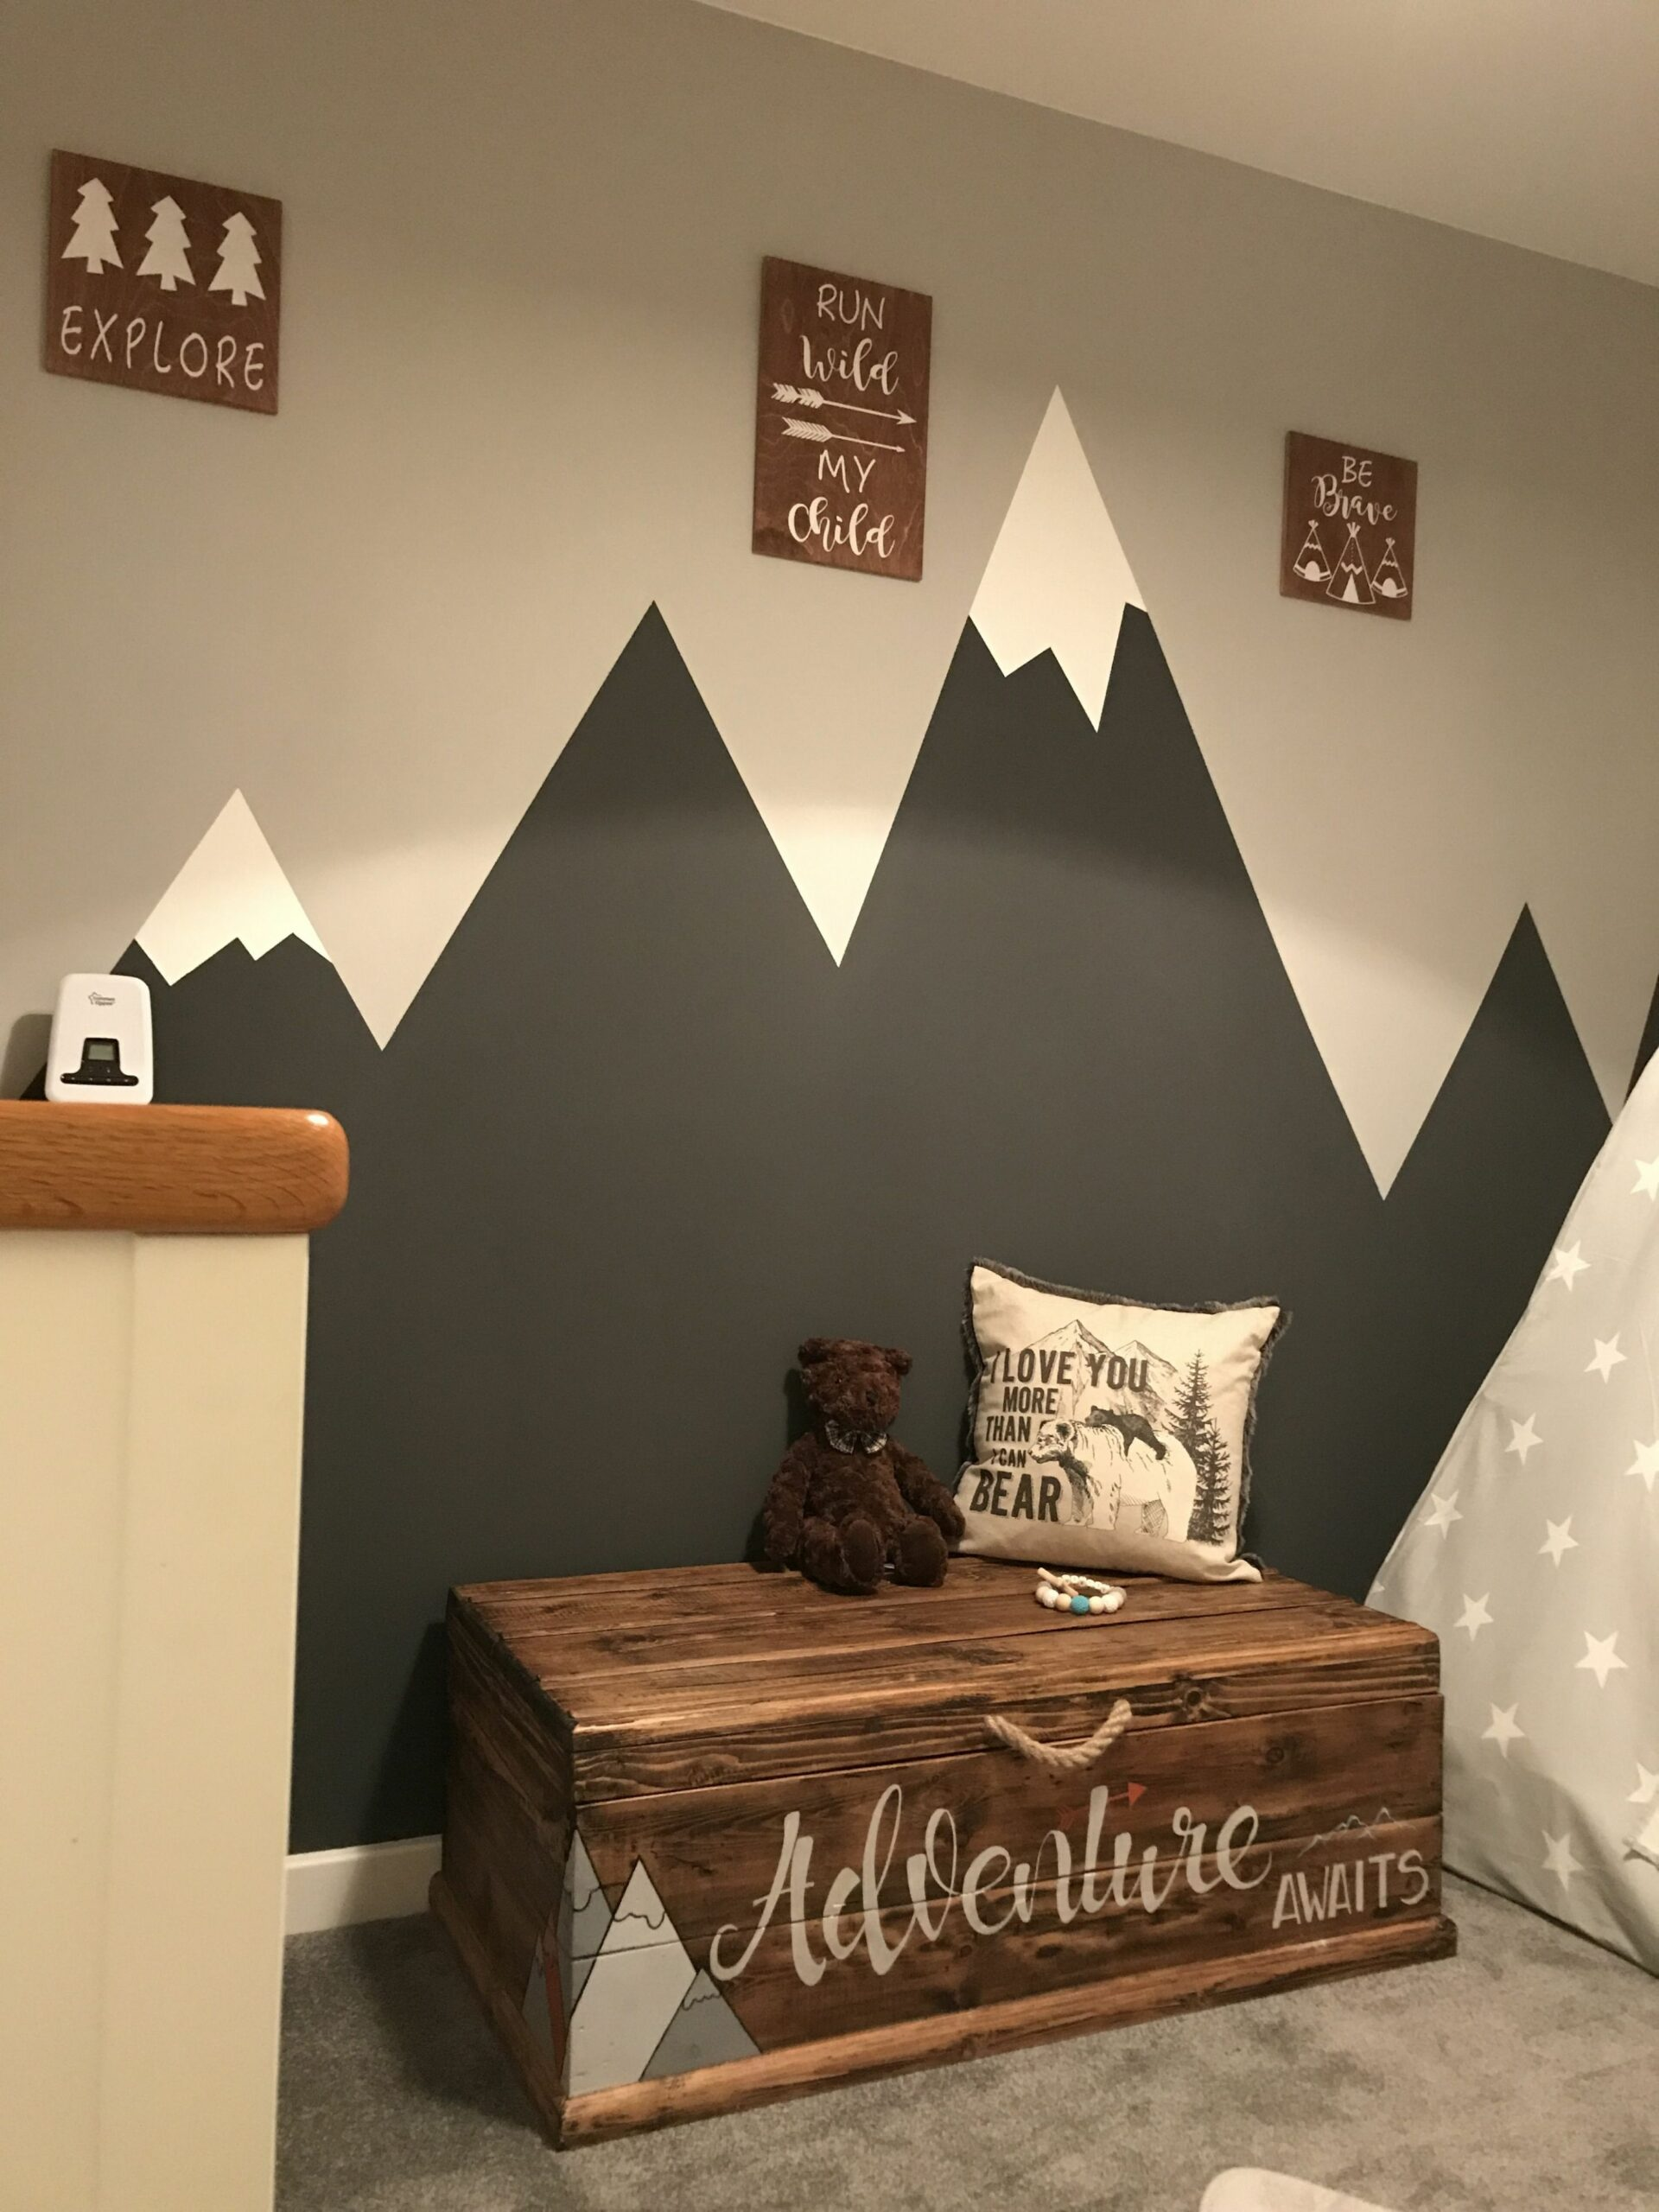 My boys room mountains for my Everest | Boy room, Baby room decor ...